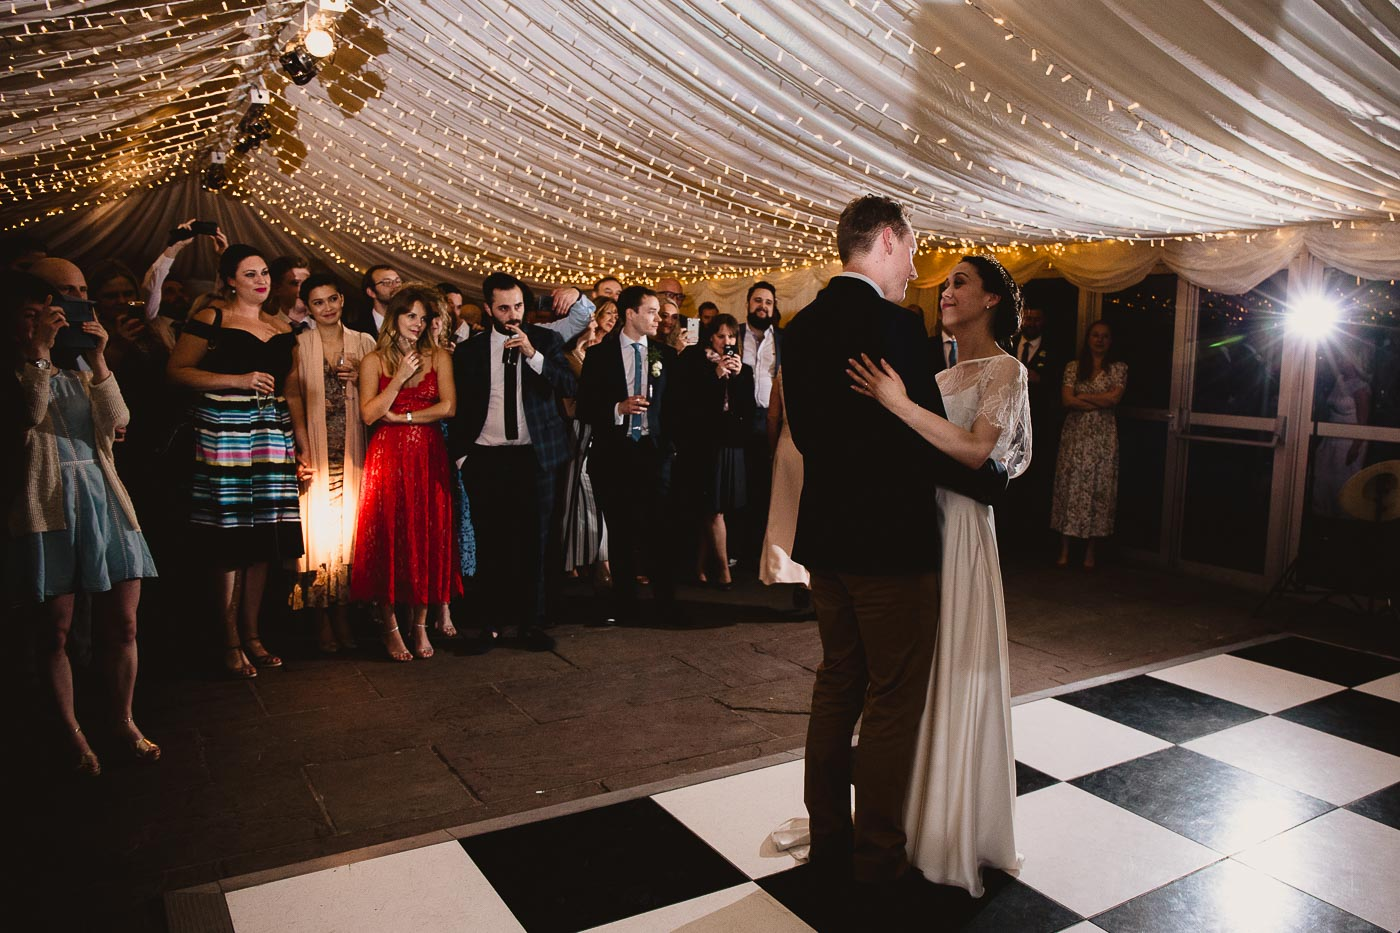 First dance with bride and groom, Inn at Whitewell Wedding in Lancashire